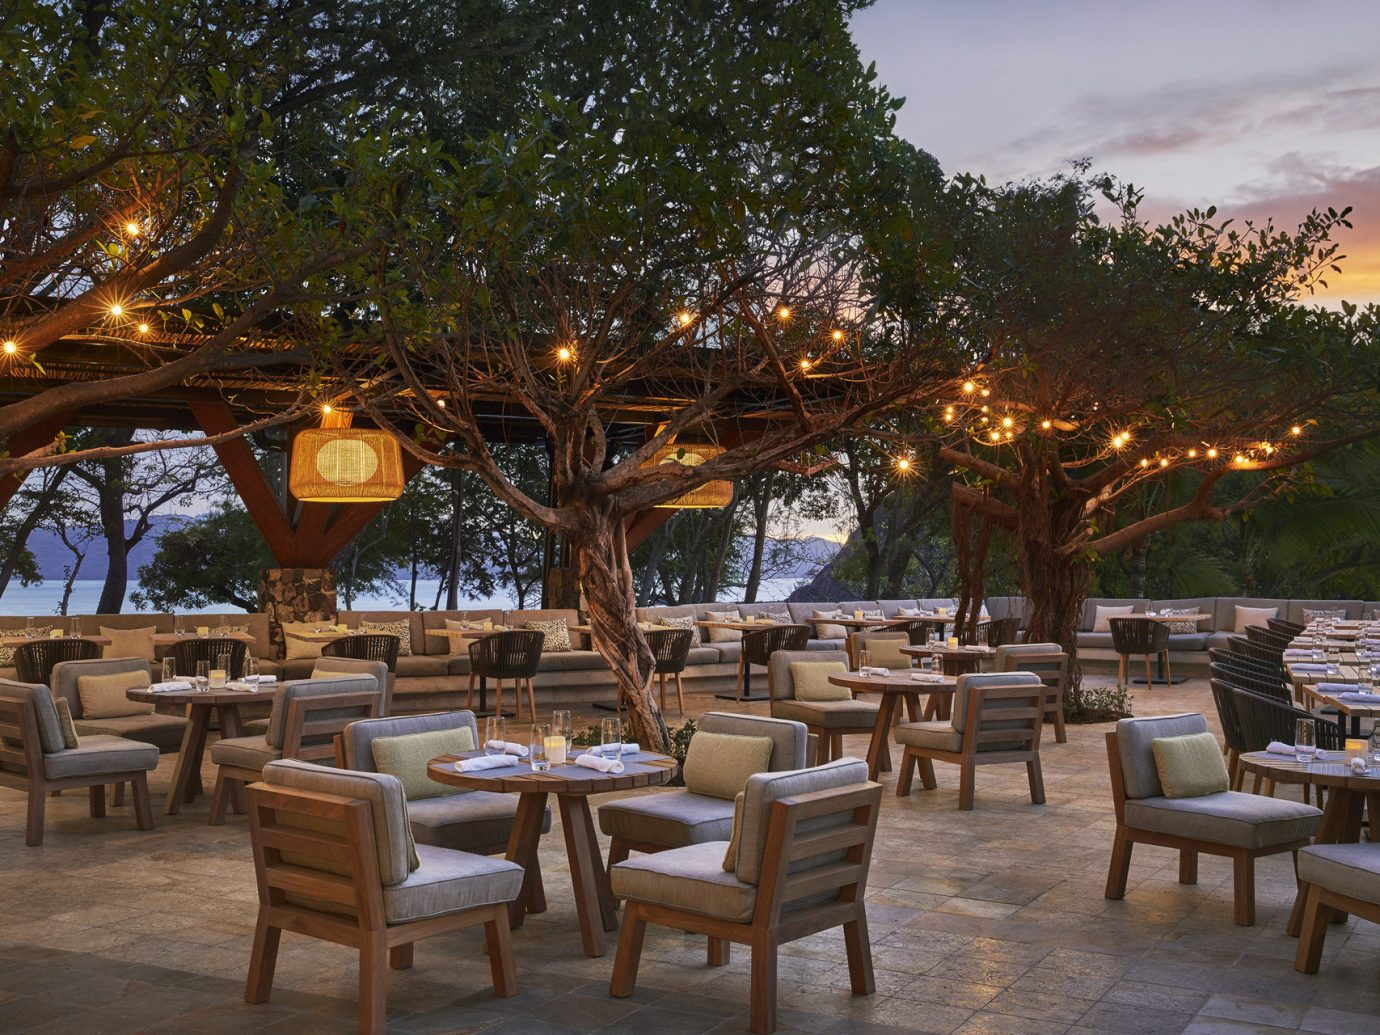 Outdoor dining at the Four Seasons Costa Rica